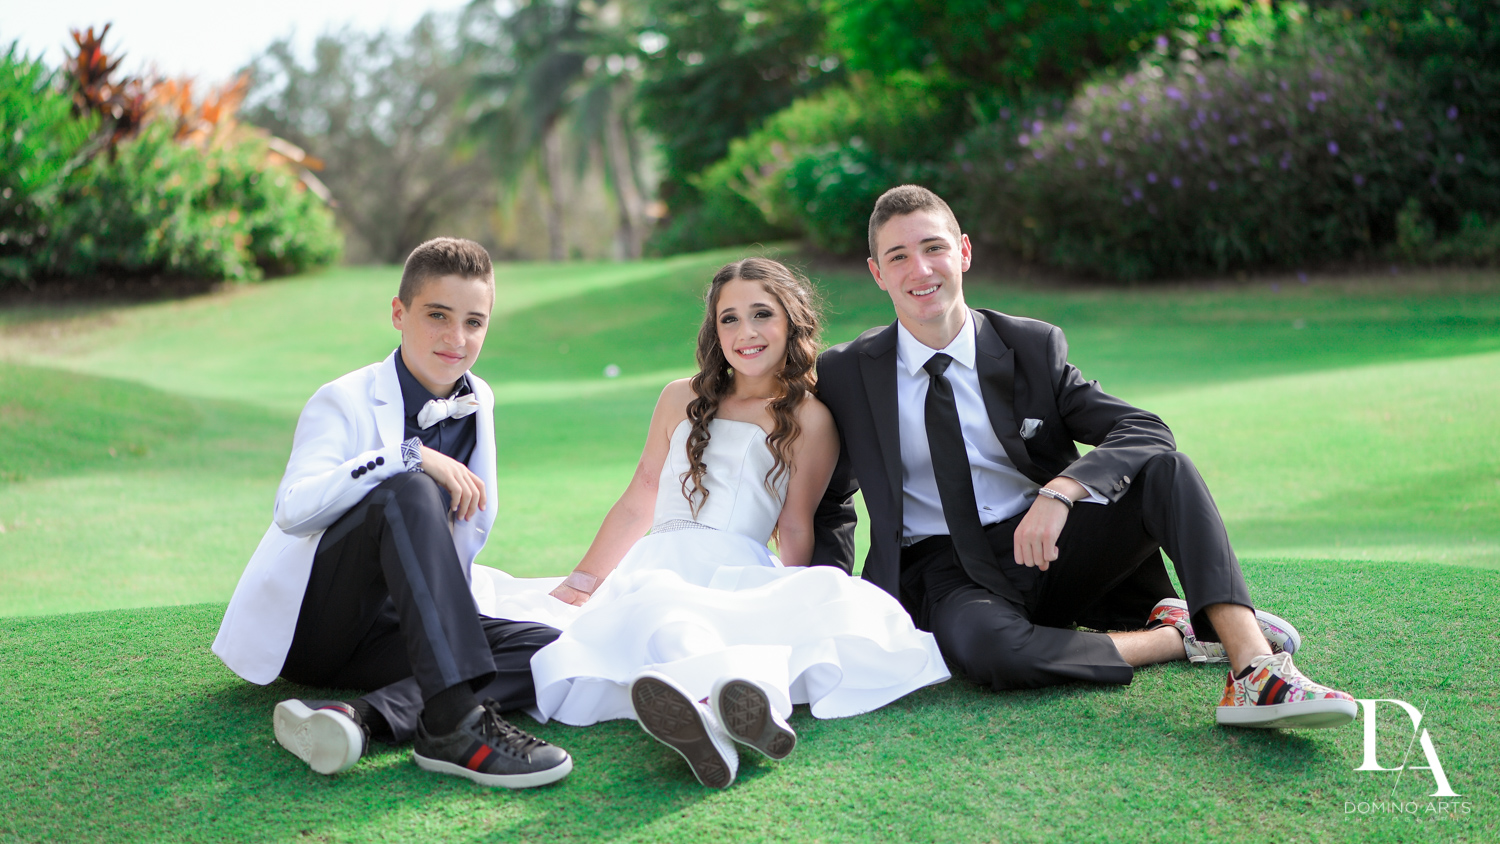 Family kids portraits at Luxury B'Nai Mitzvah at Woodfield Country Club by Domino Arts Photography